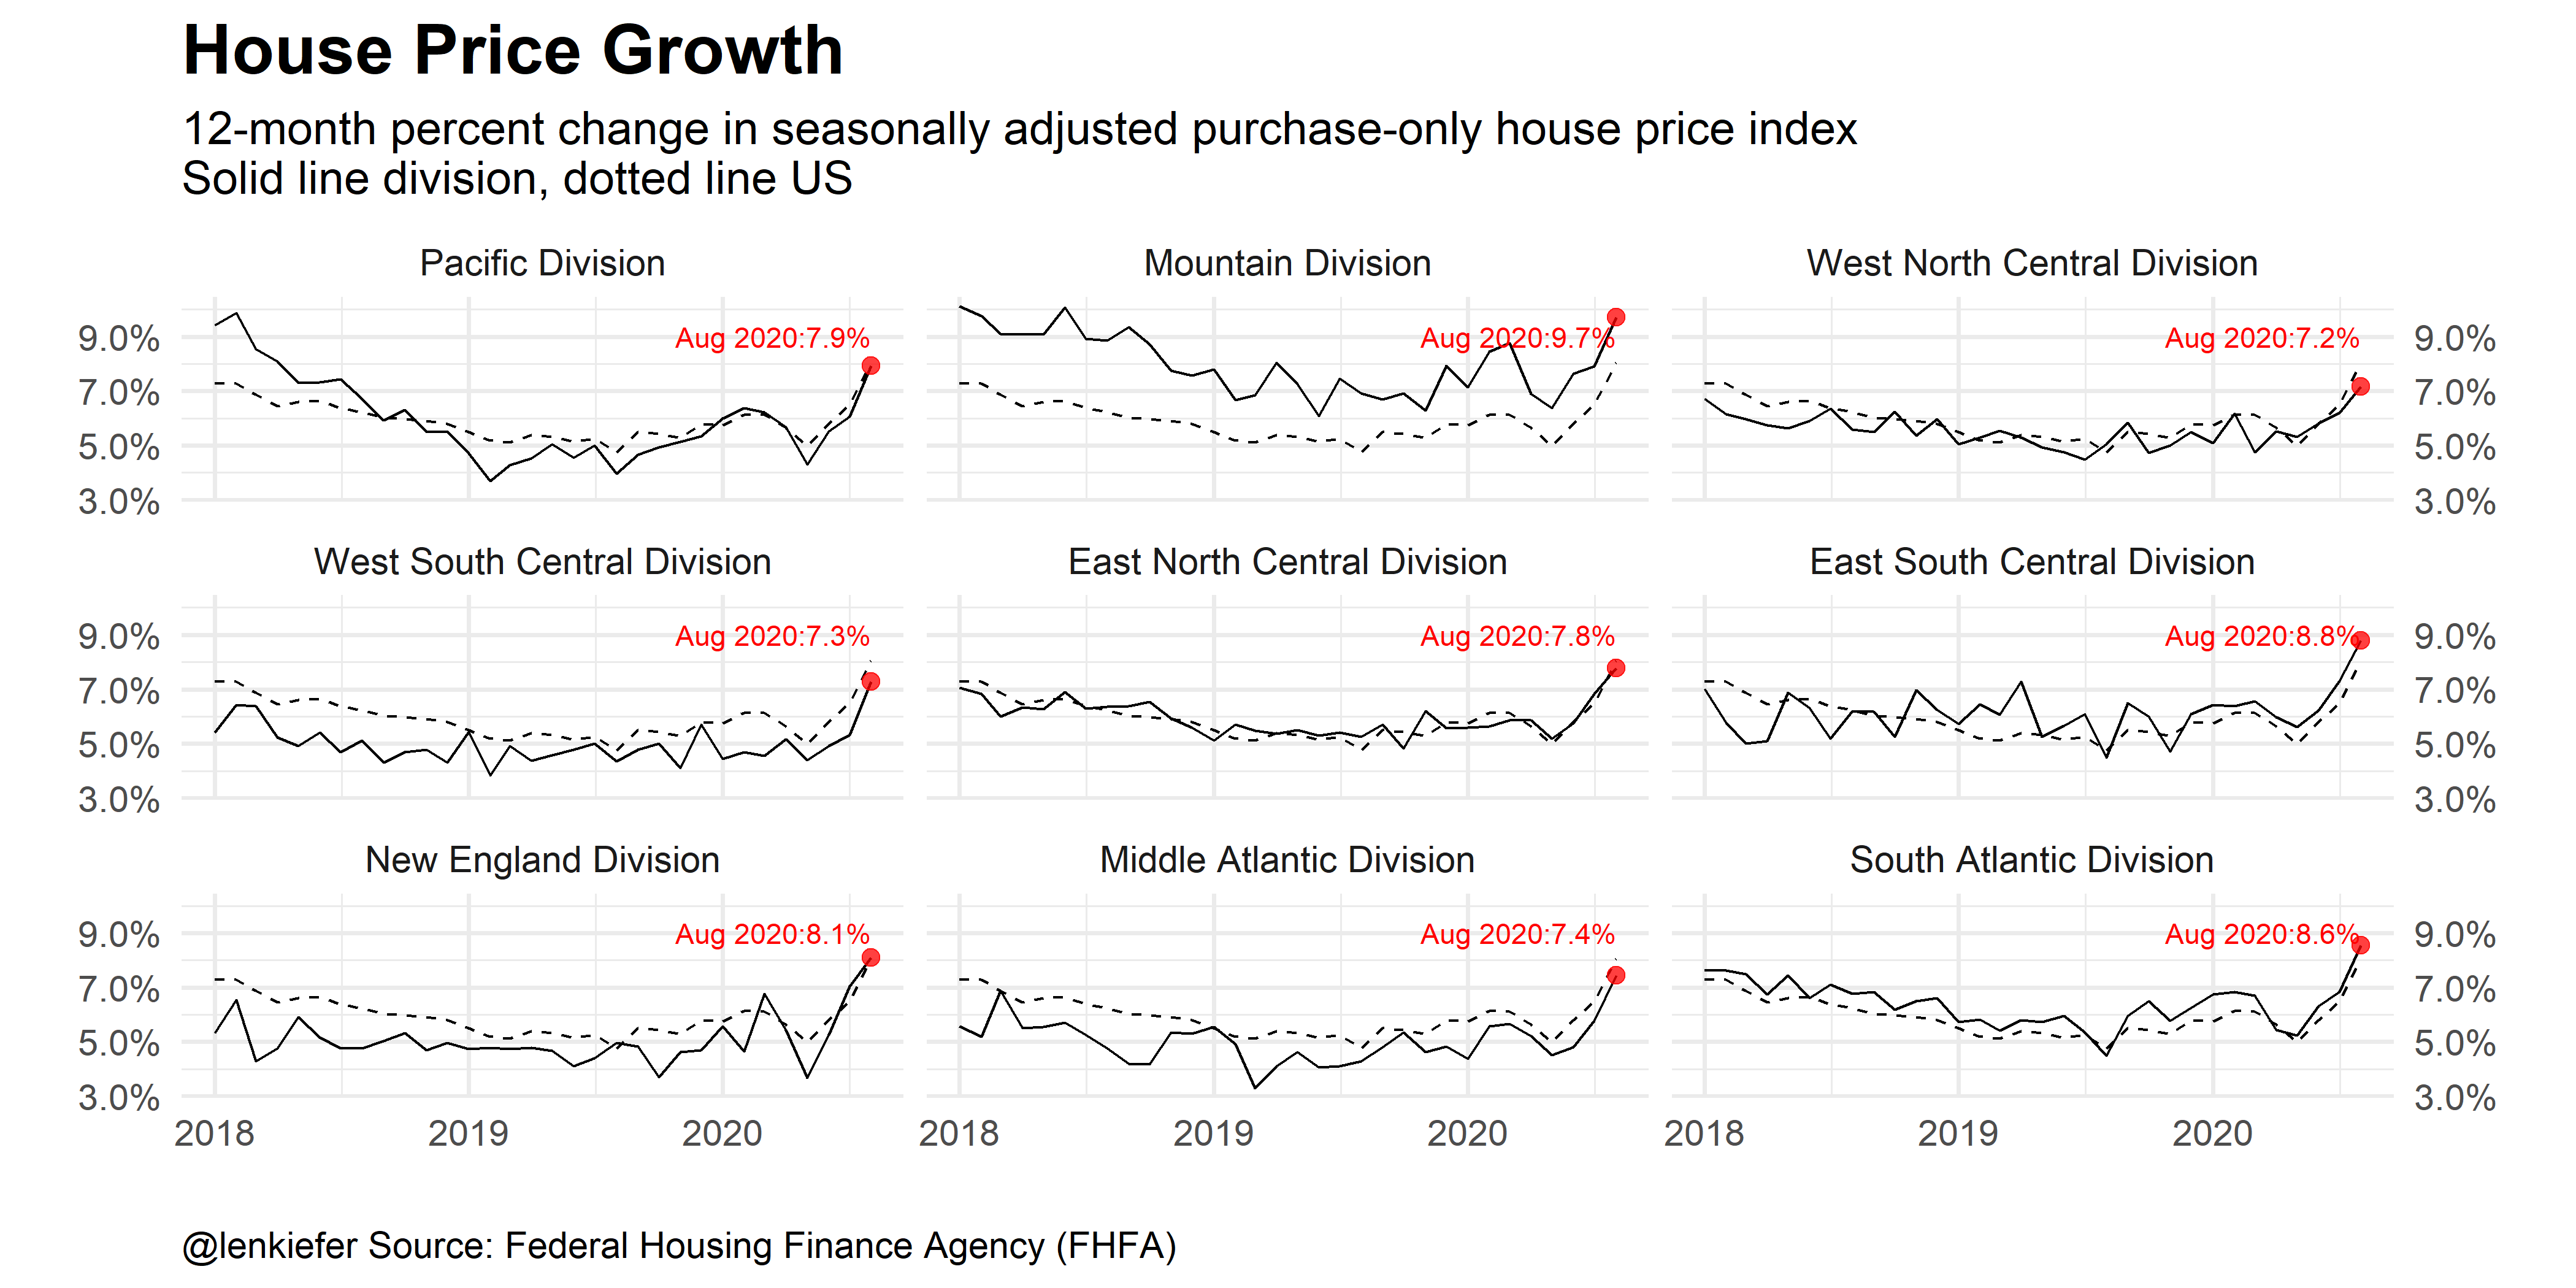 Regional trend charts of house price trends in the US